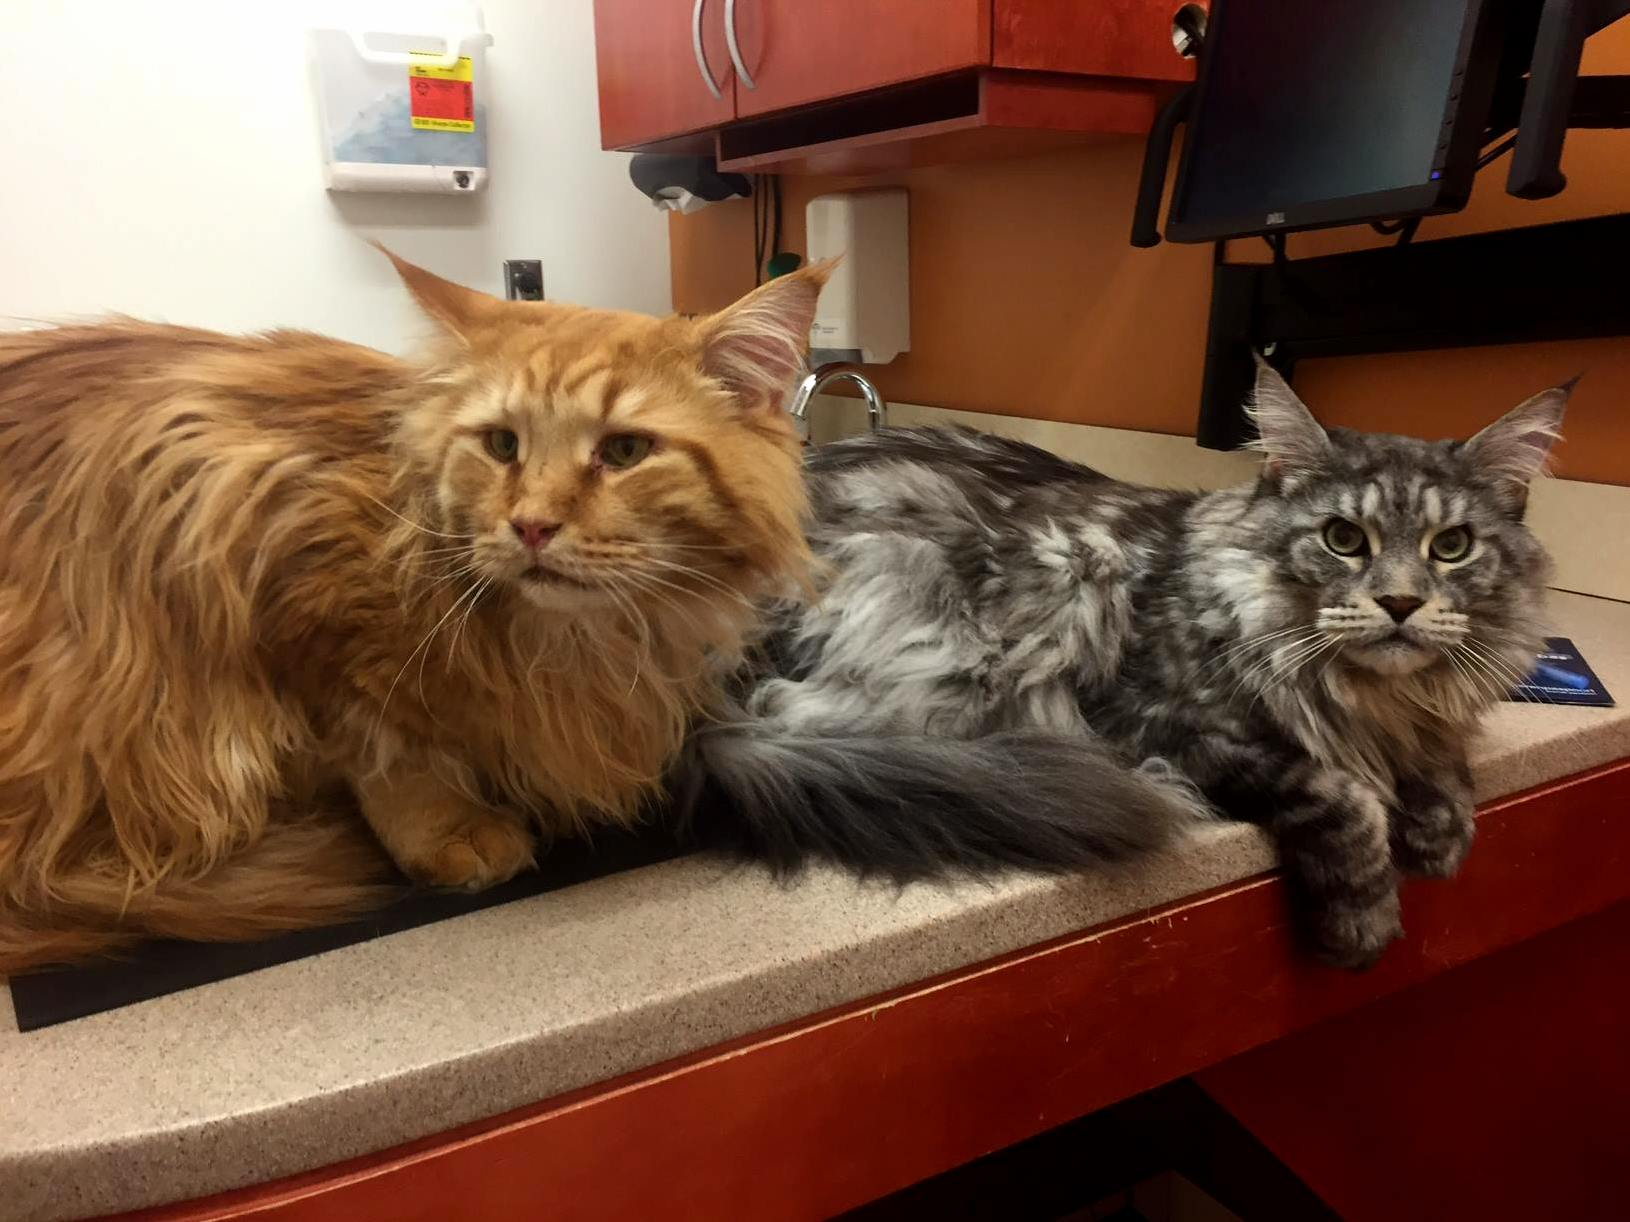 Sfspca just posted these two maine coon buddies getting their vaccines 21.5 and 25lbs